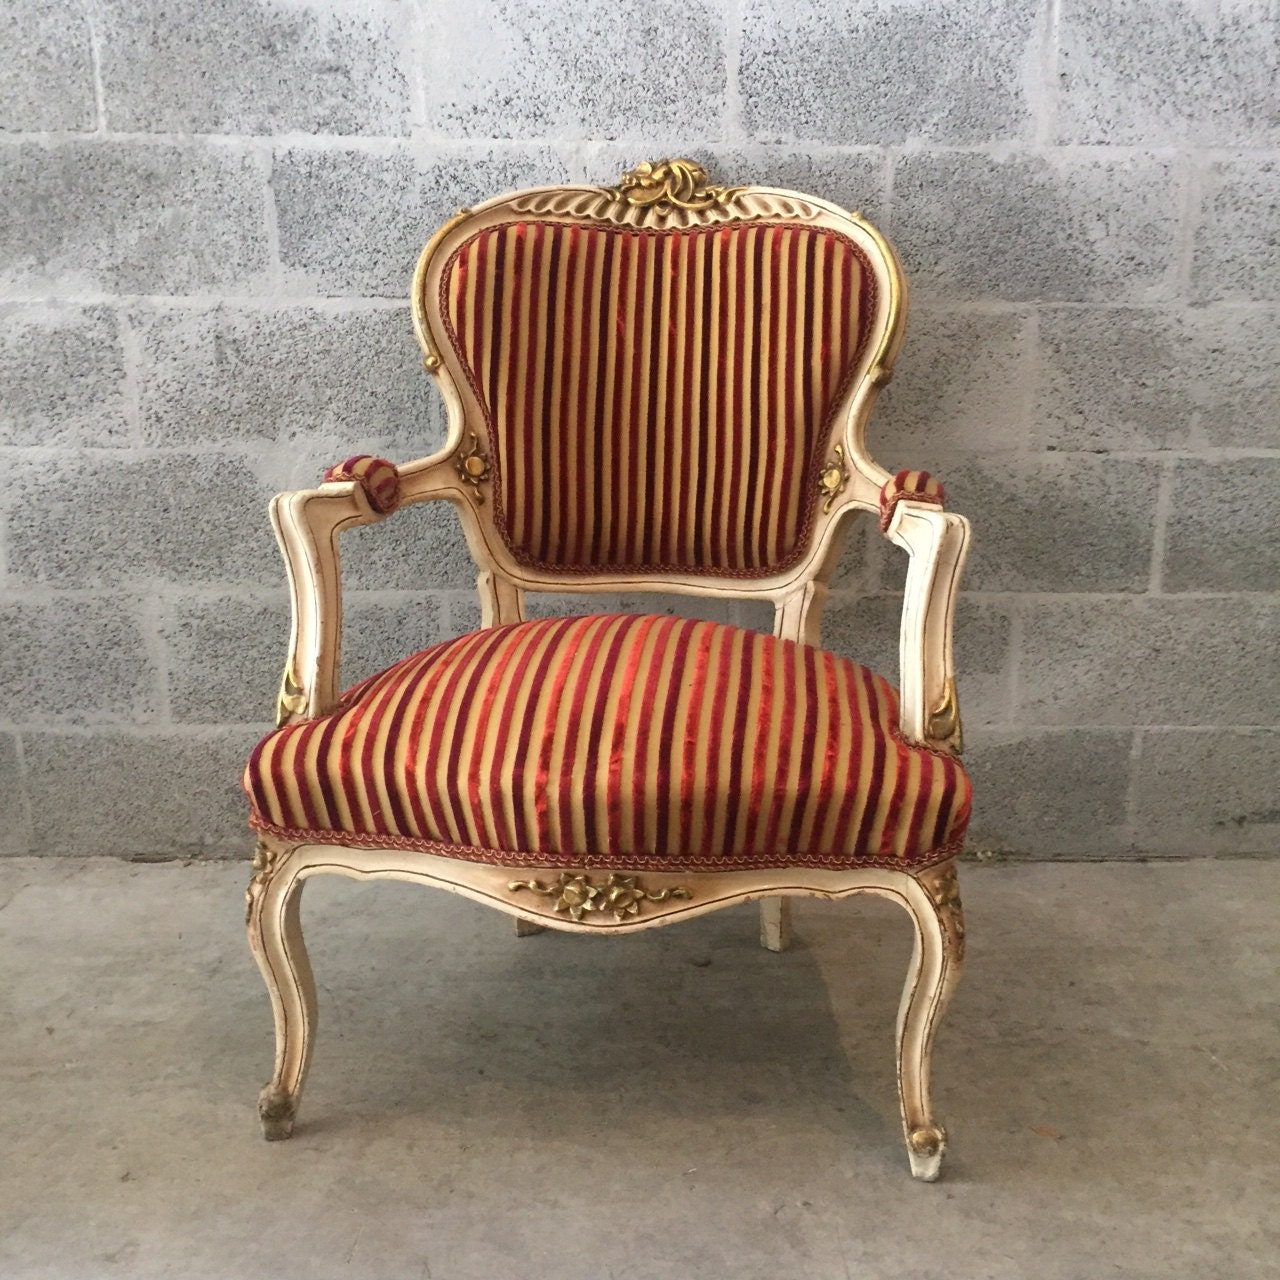 Creme french chair antique louis xvi fauteuil amrchair bench table original c - Fauteuil crapaud beige ...